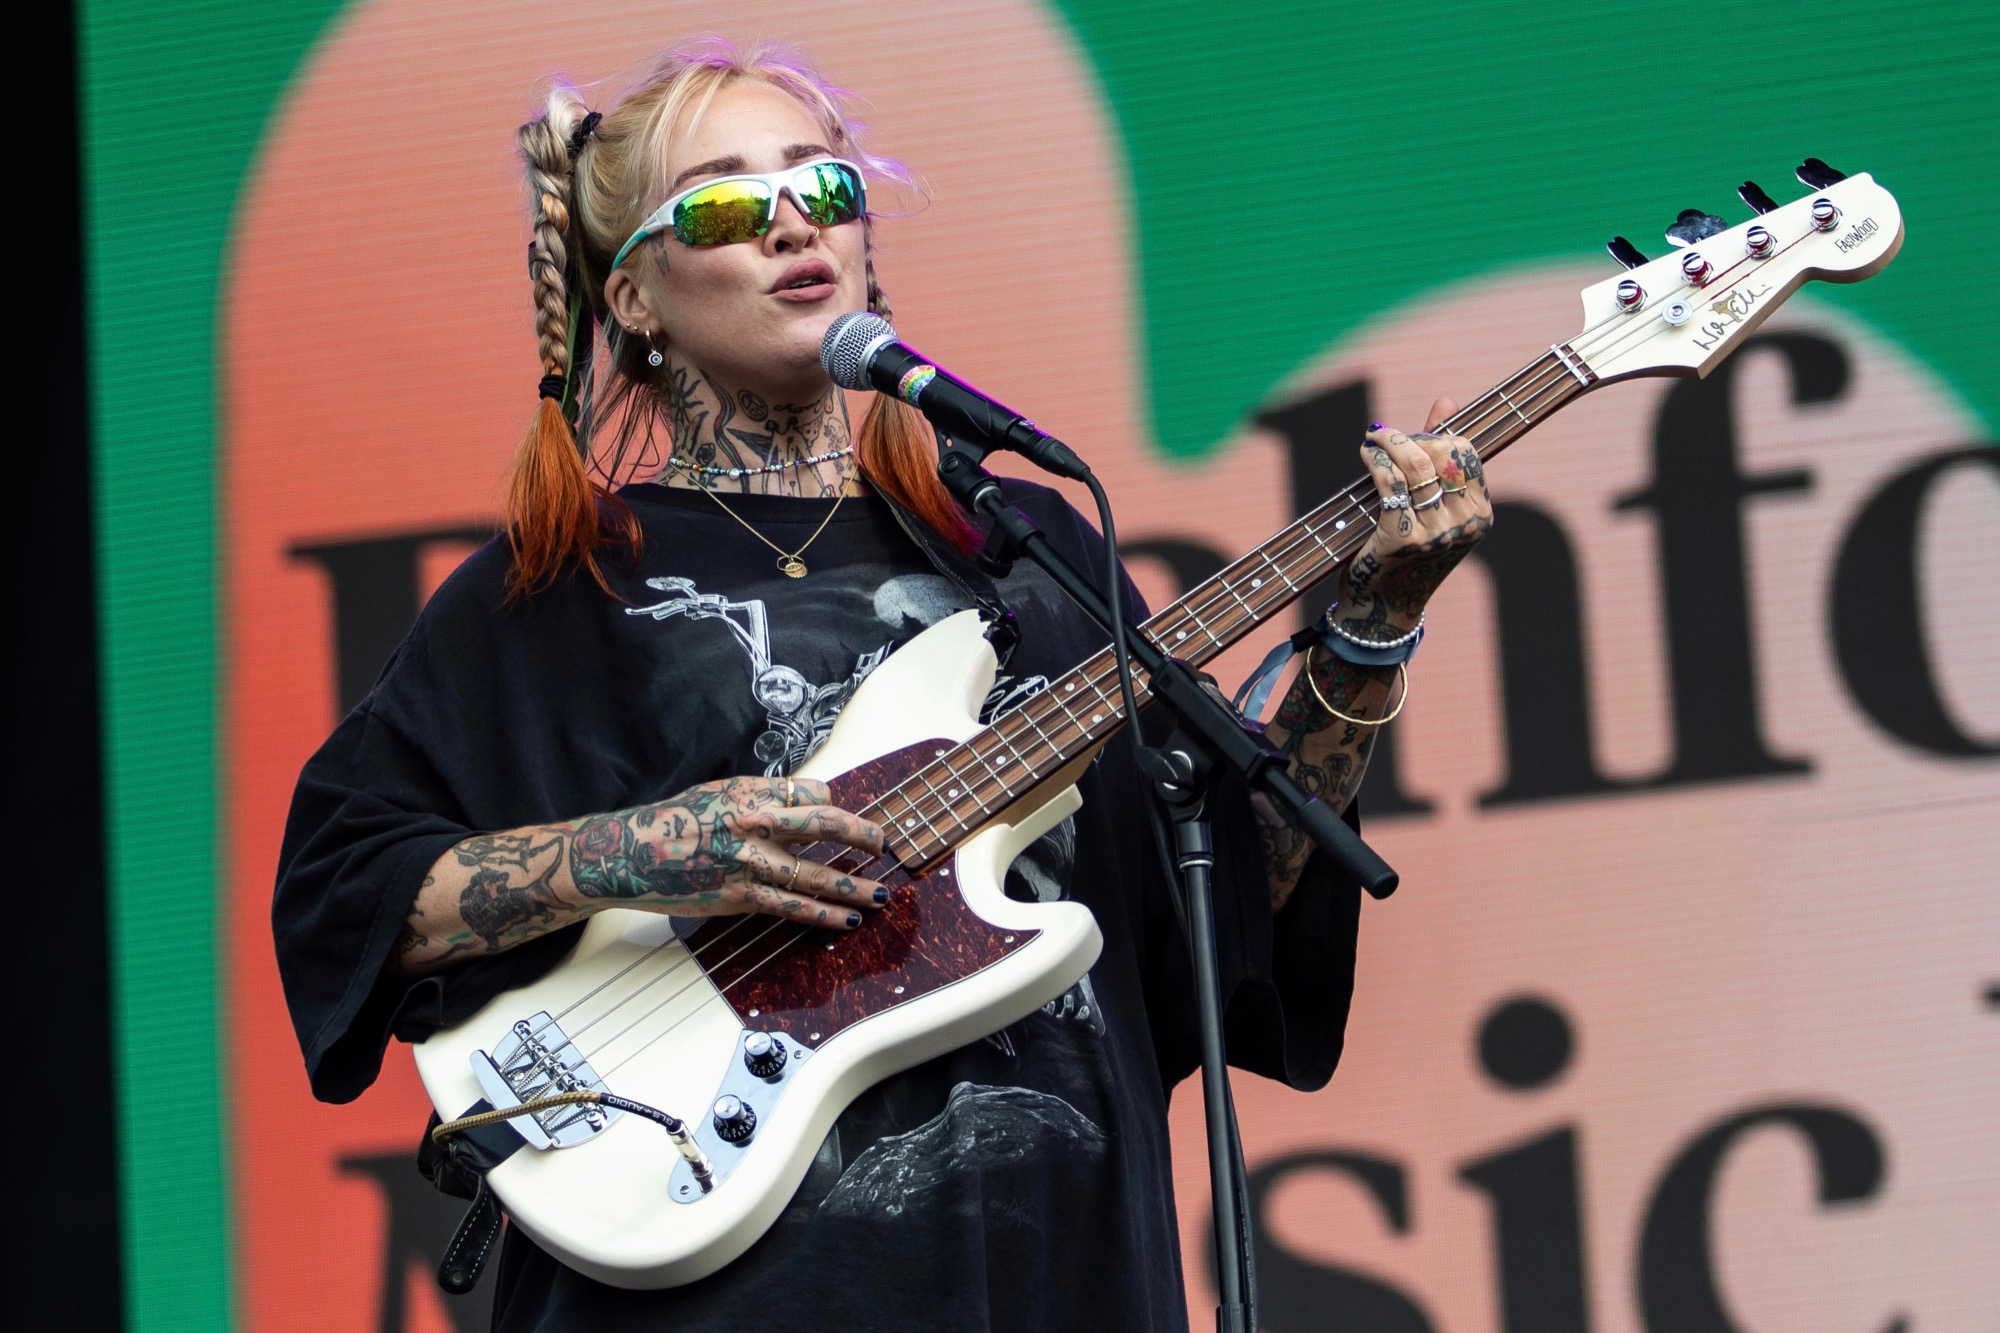 DEHD performs at the Pitchfork Music Festival in Chicago on Sep. 10, 2021.